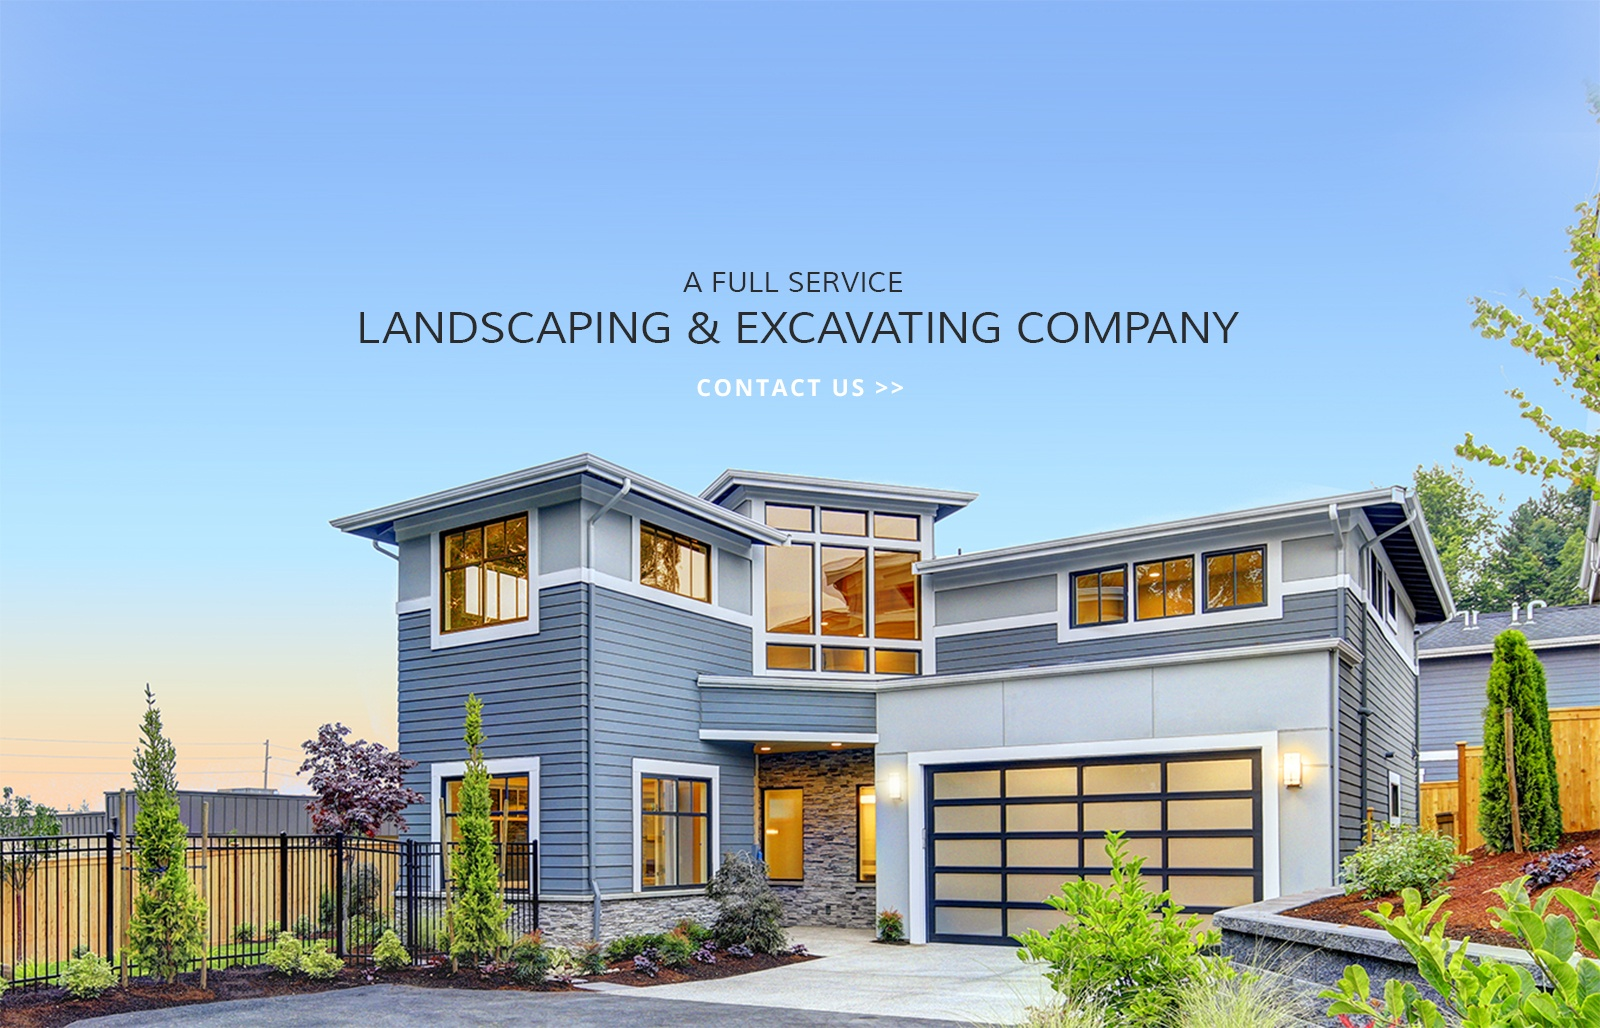 Excavation Company Calgary AB